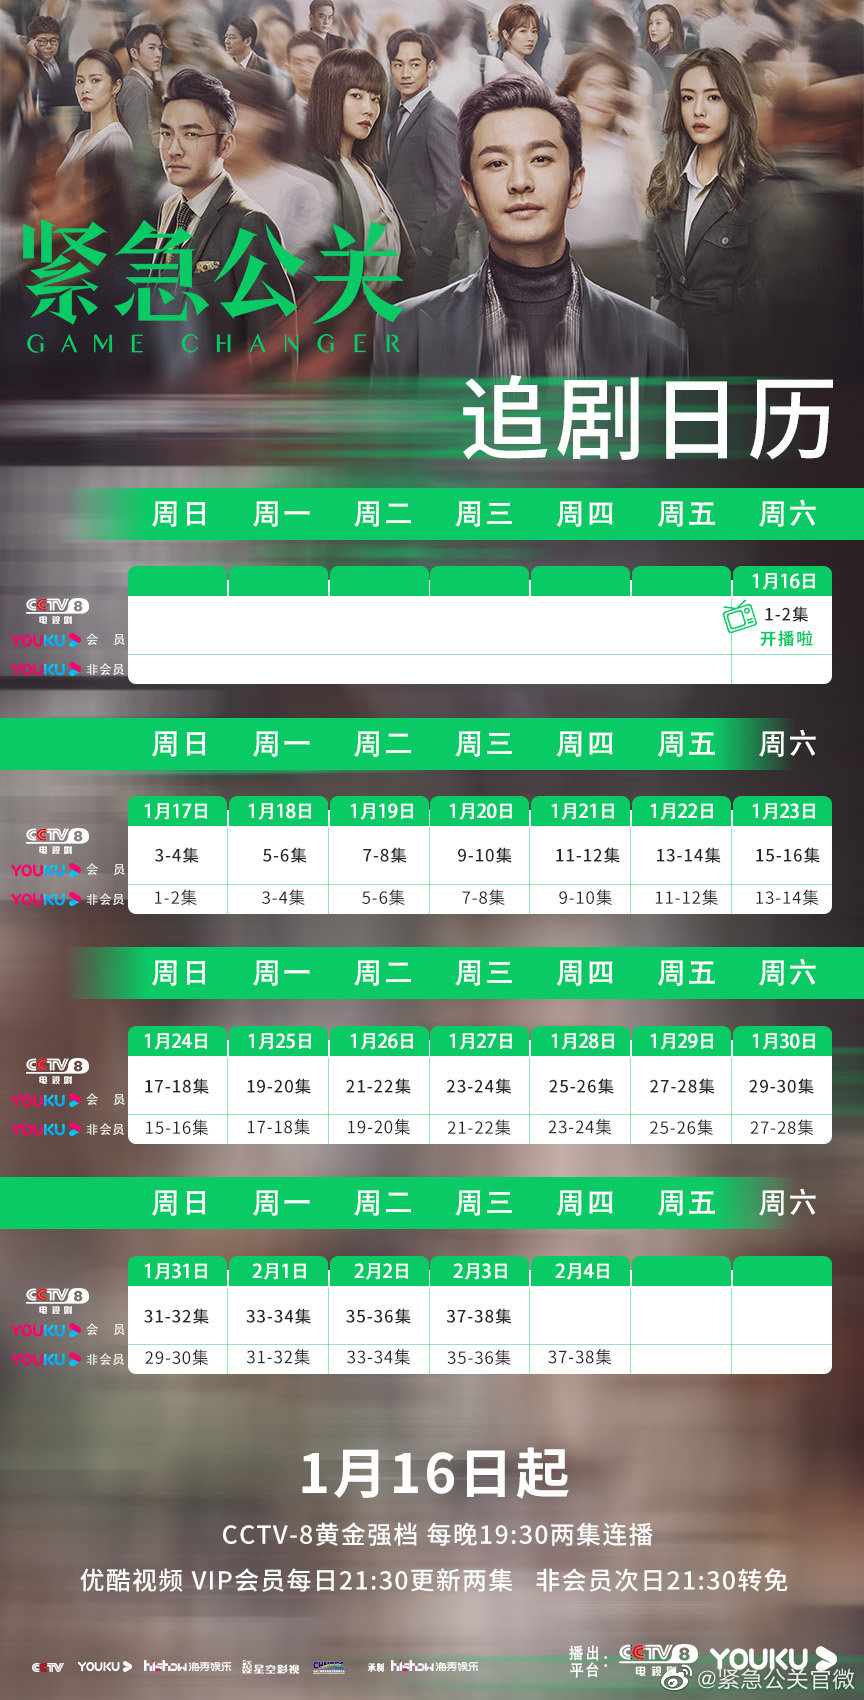 Game Changer Chinese Drama Airing Calendar